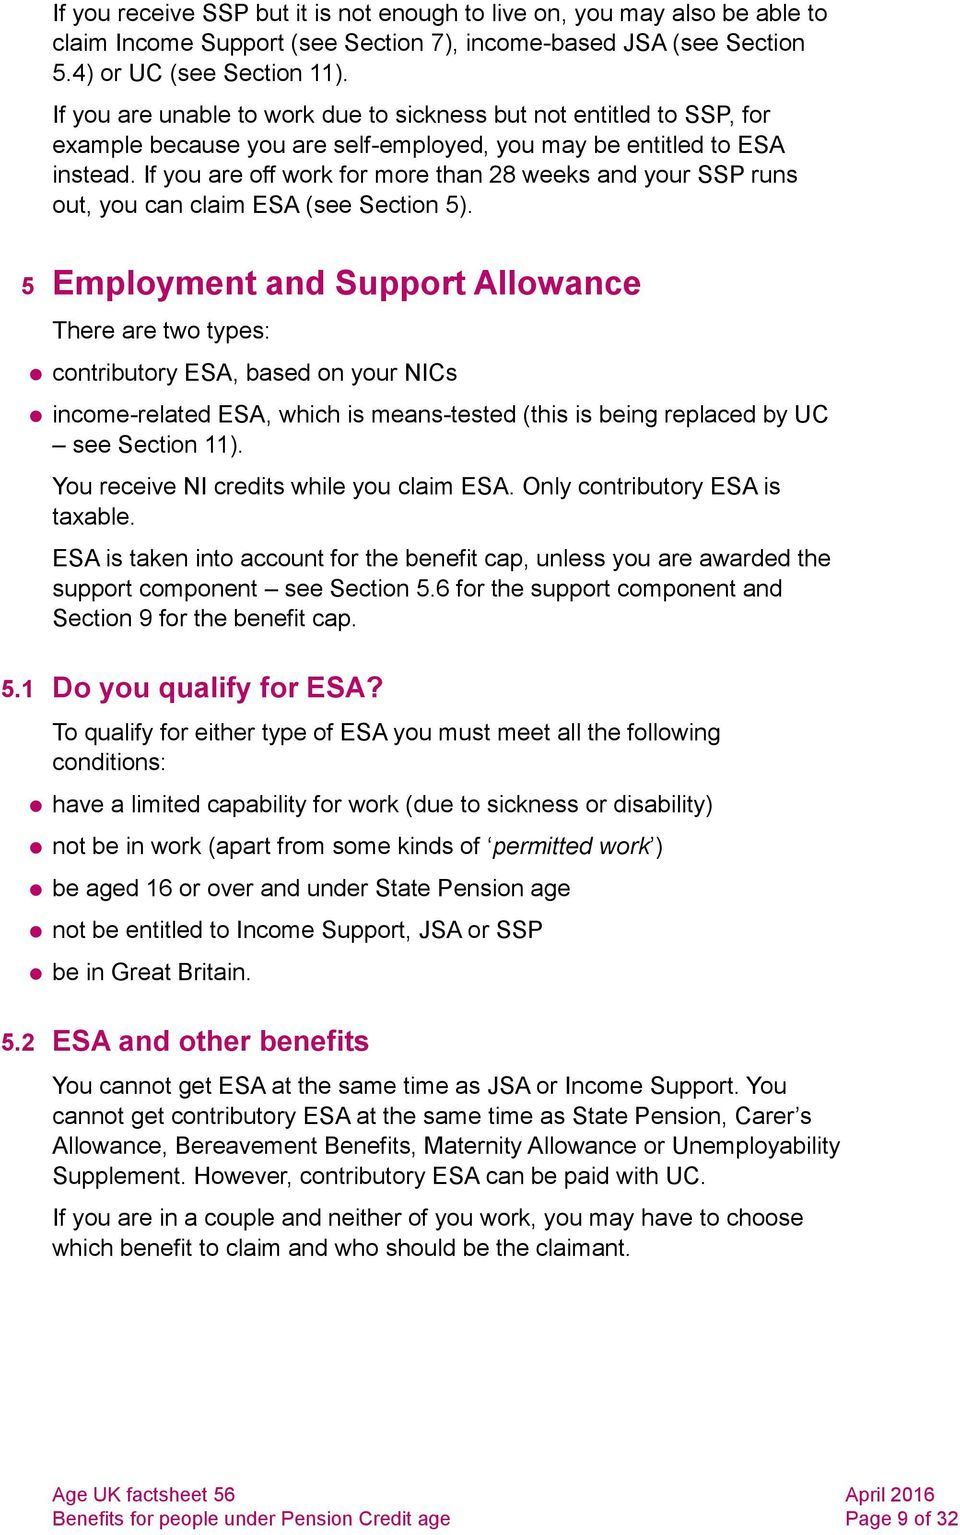 If you are off work for more than 28 weeks and your SSP runs out, you can claim ESA (see Section 5).